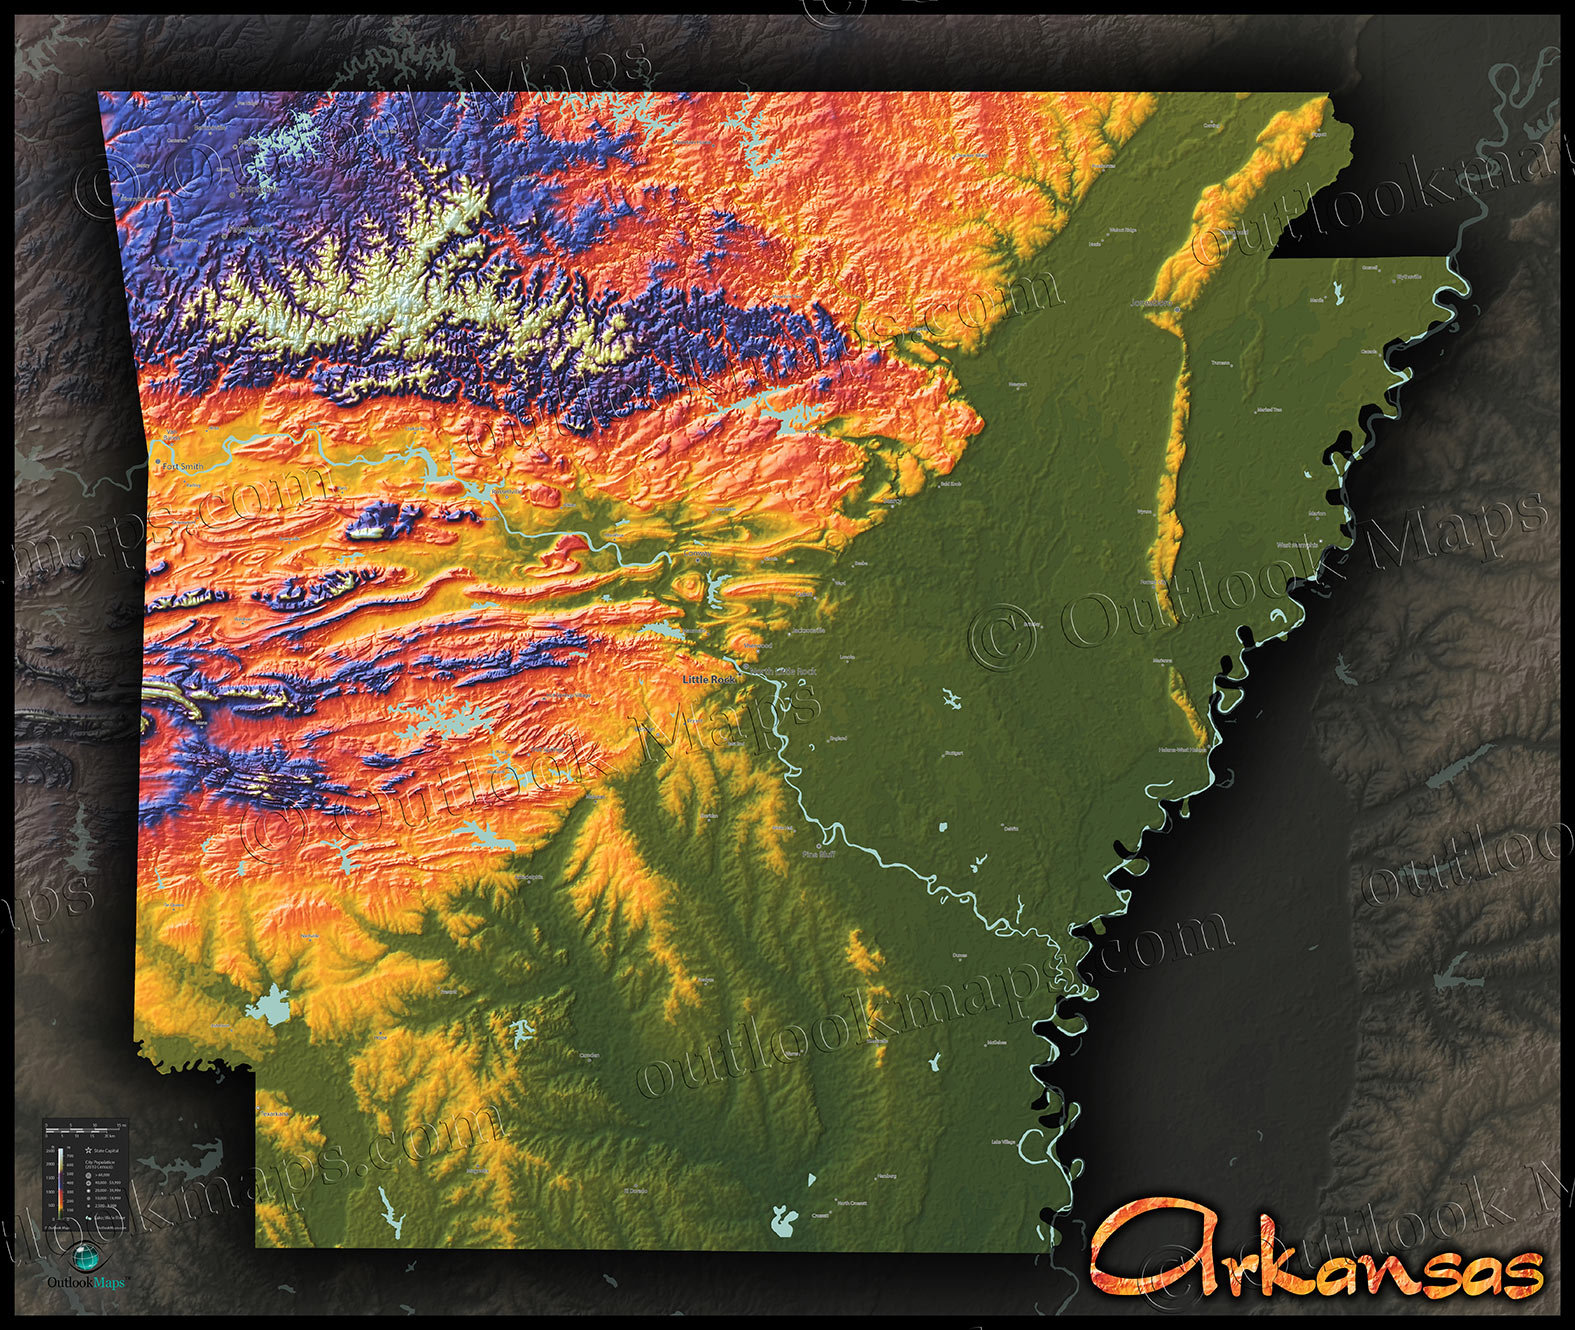 framed world maps with push pins with Arkansas Topographic Map on World Map In Burma also National Geographic My World Personalized Map Earth Toned as well World Map 3d Software Free Download additionally World Map Posters together with World Map To Show Kenya.